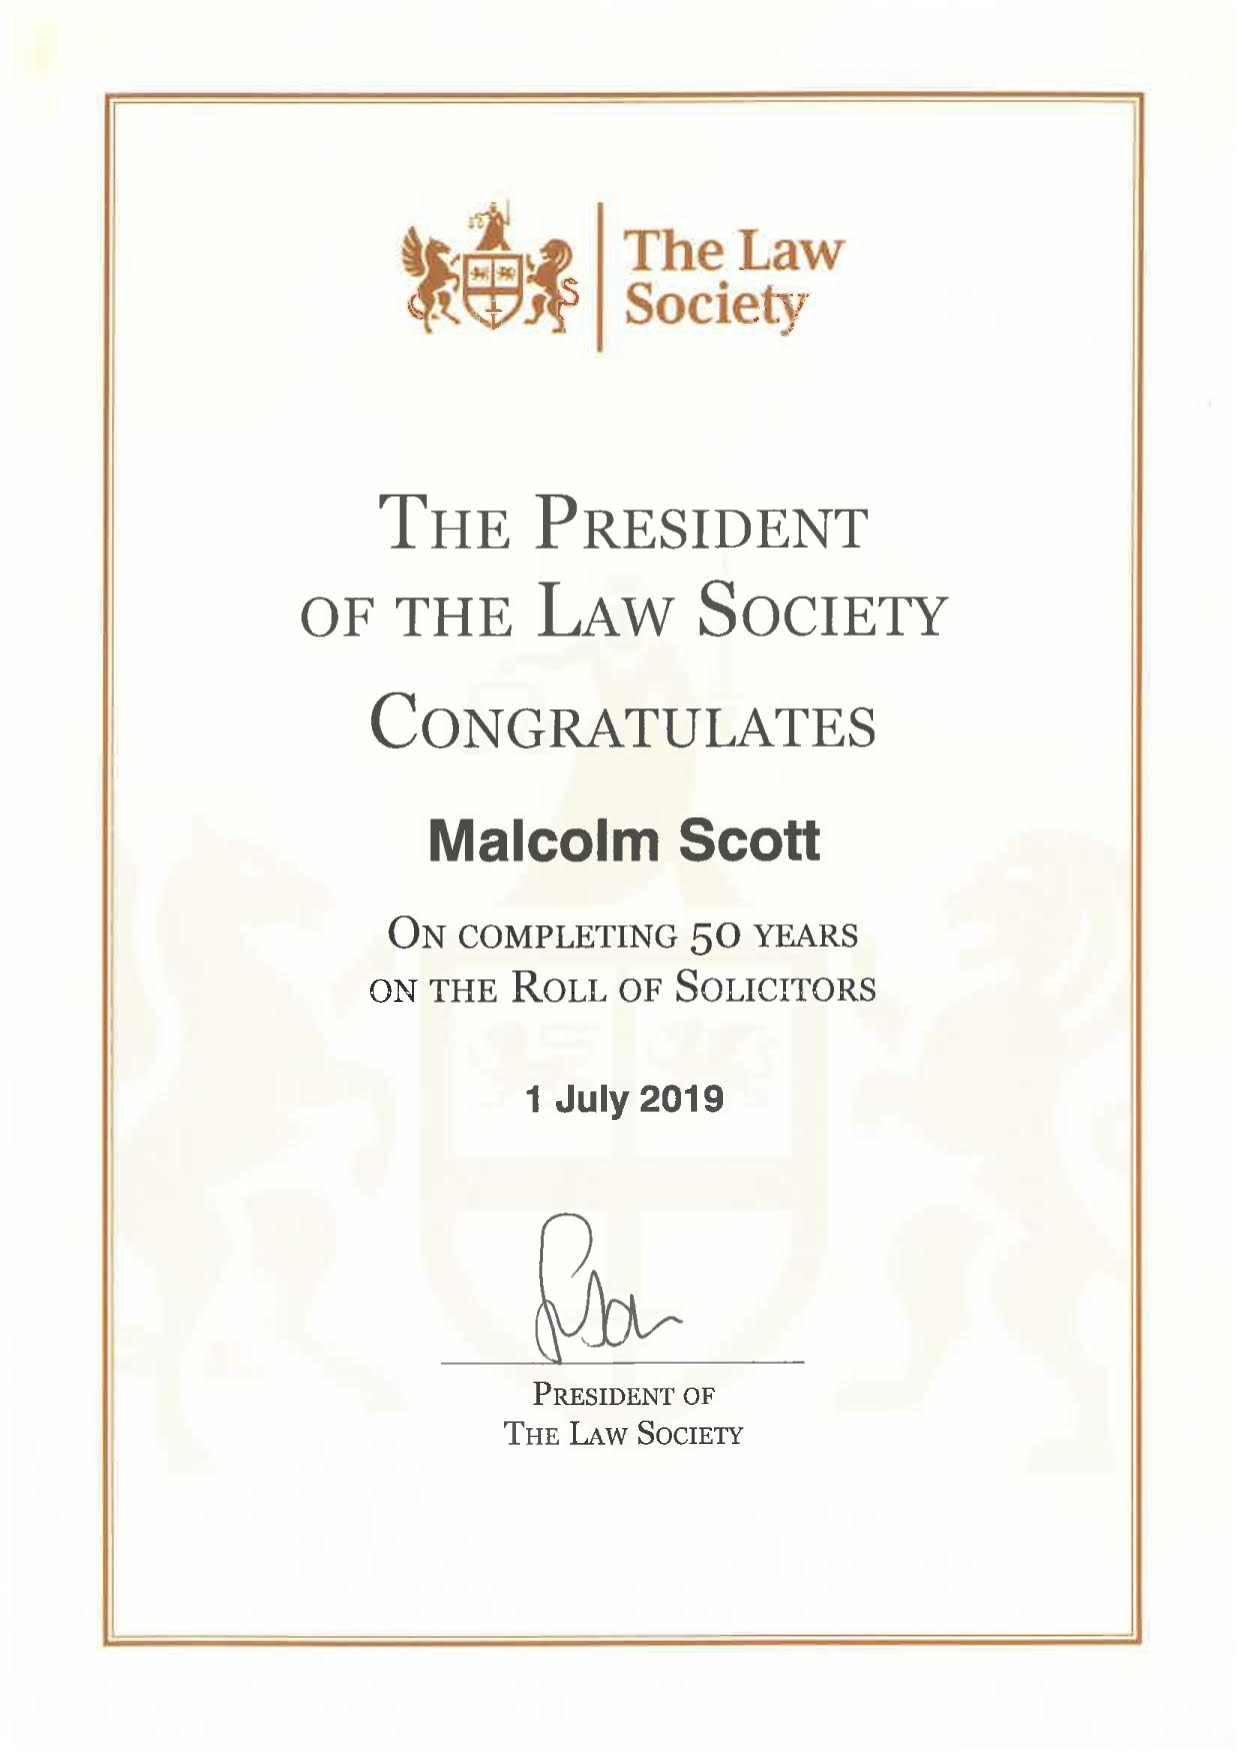 Law Society 50 year certificate Malcolm Scott